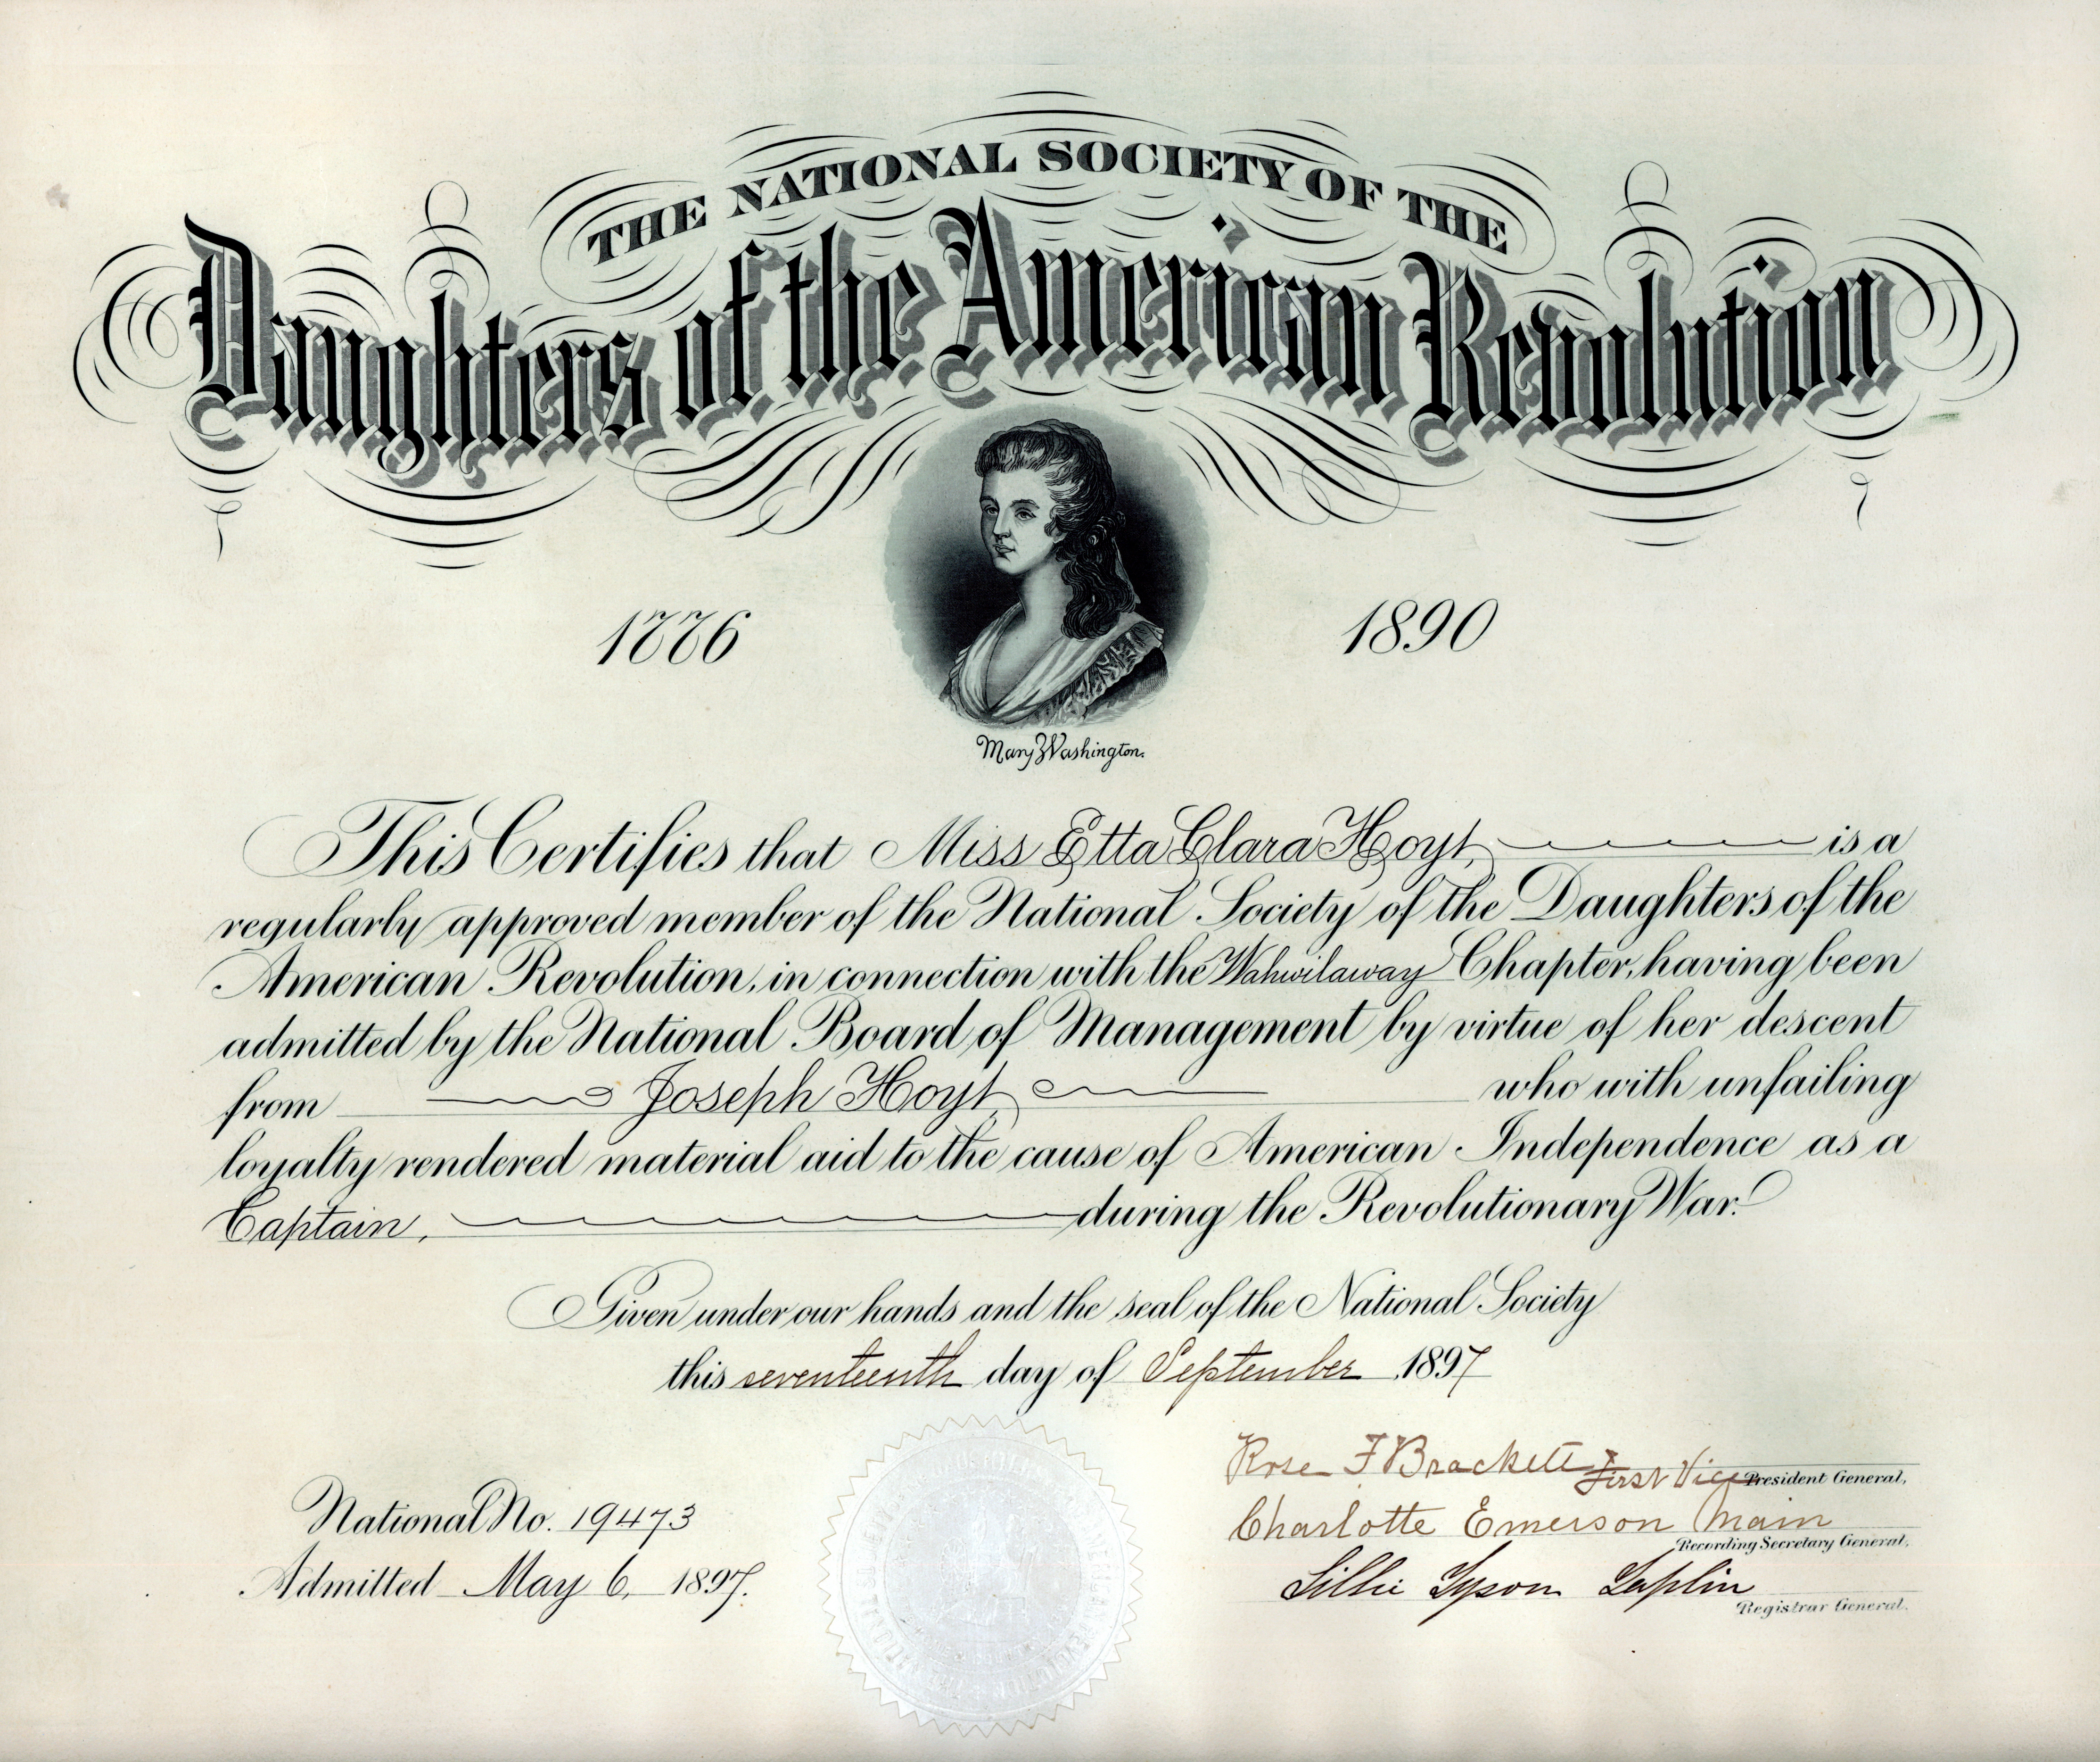 daughters of the american revolution The national society of the daughters of the american revolution (or nsdar)  was founded in 1890 headquartered in washington dc, the dar is a volunteer .